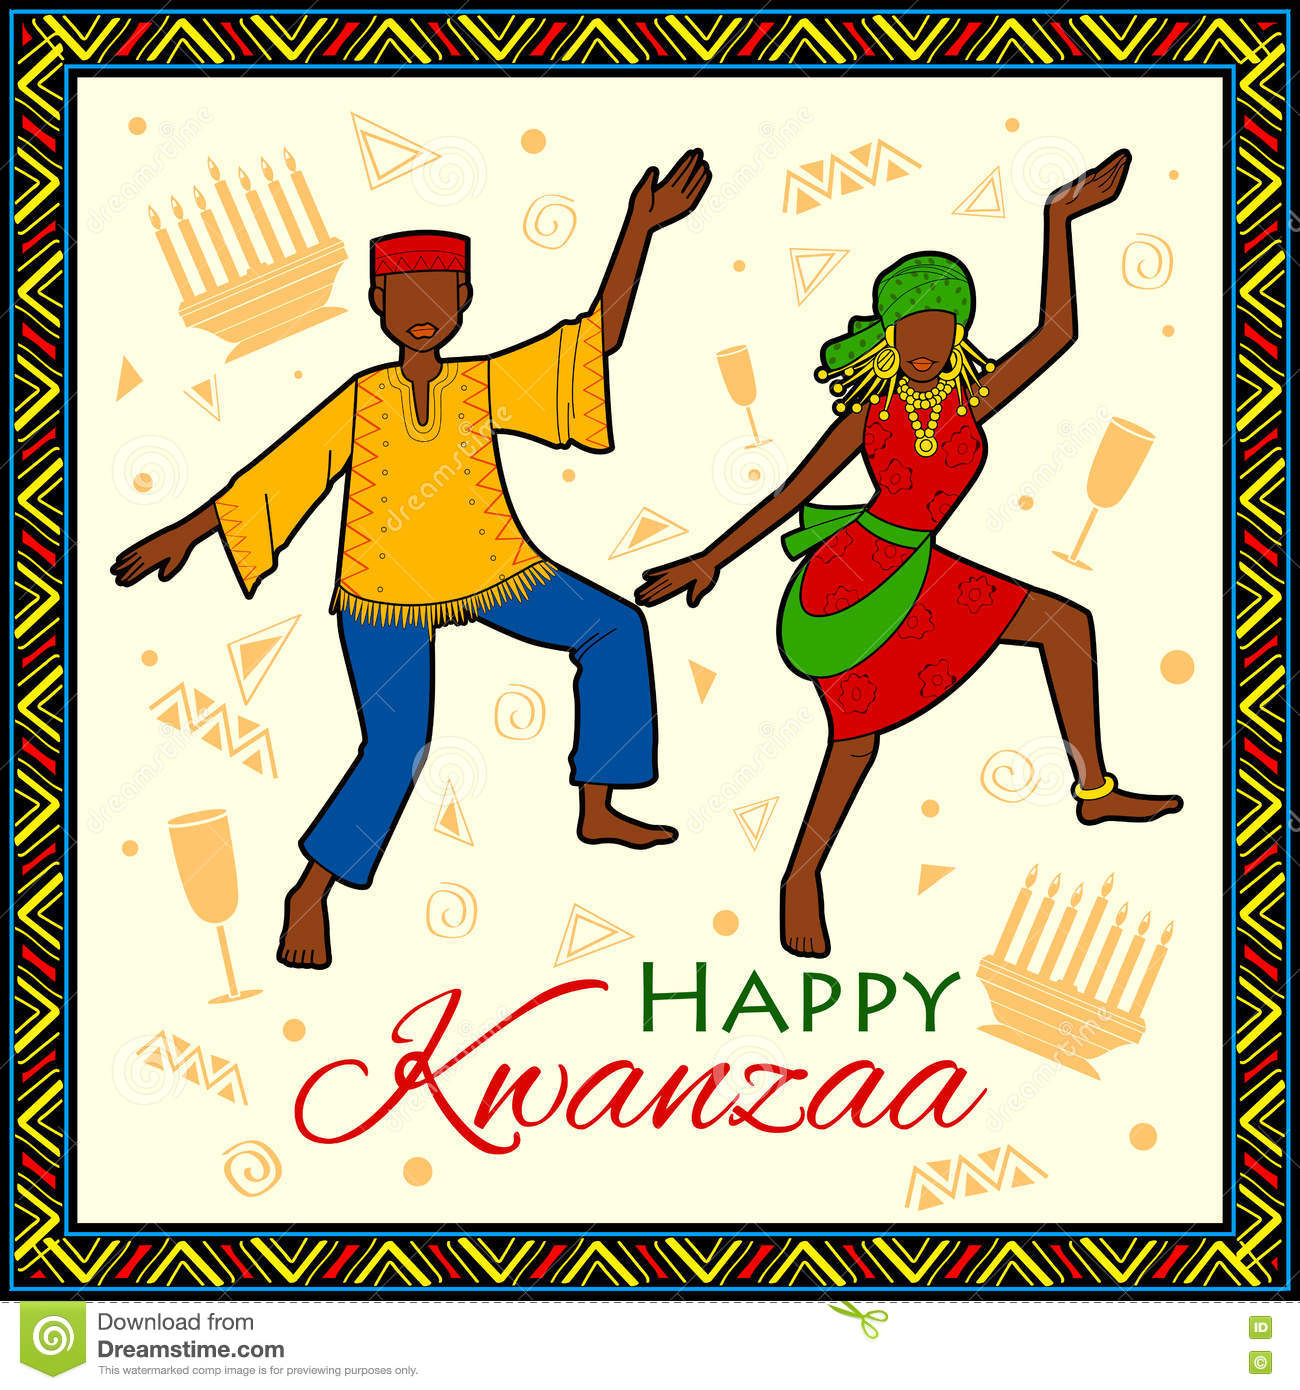 Happy kwanzaa greetings for celebration of african american royalty free vector download happy kwanzaa greetings for celebration of african american holiday kristyandbryce Images